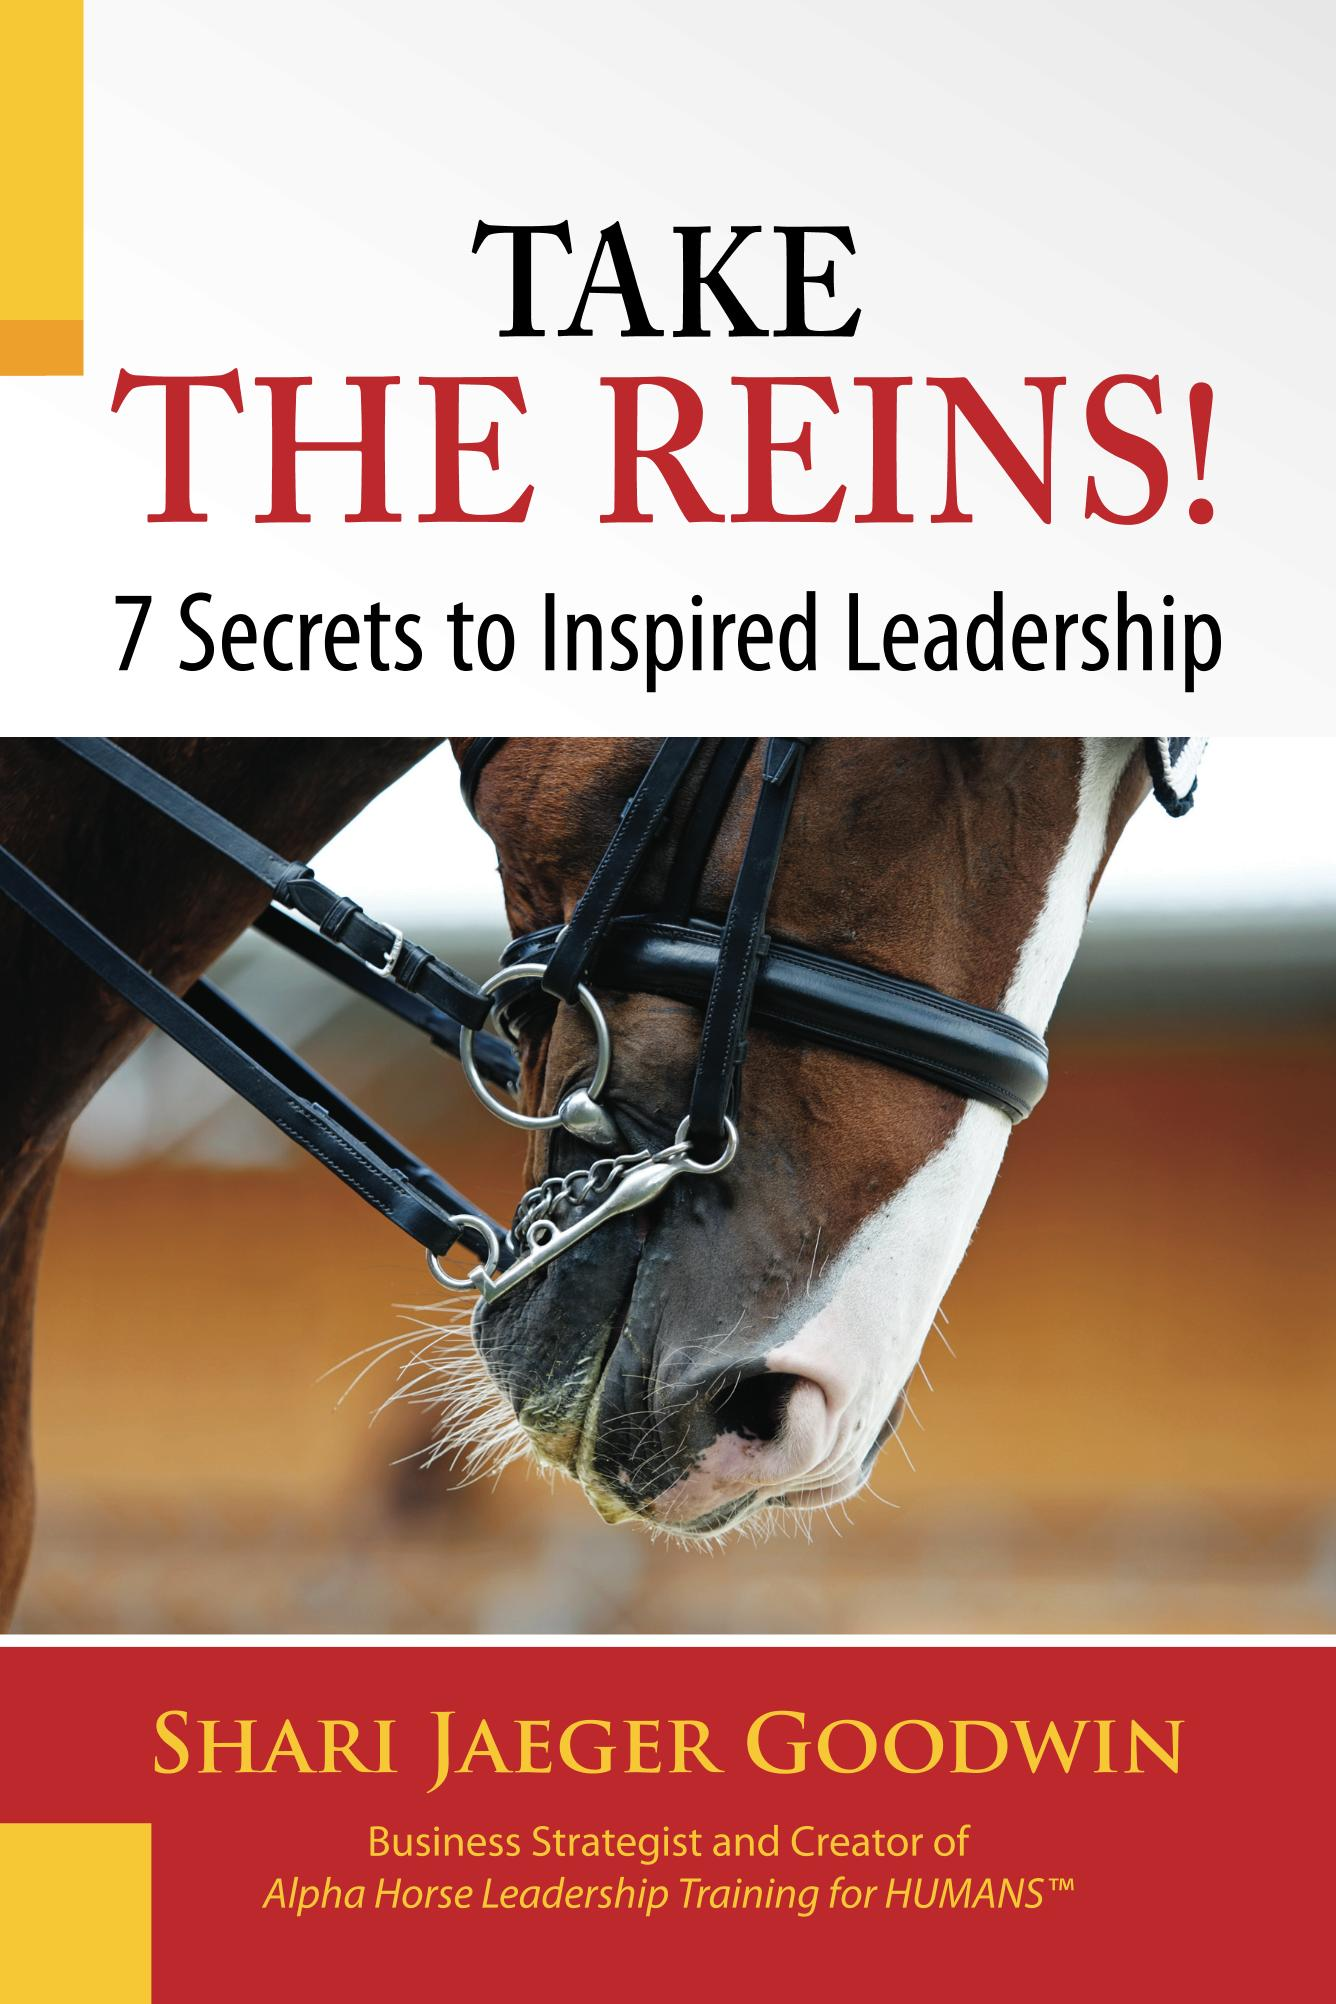 TAKE_THE_REINS_!_7_S_Cover_for_Kindle.jpg